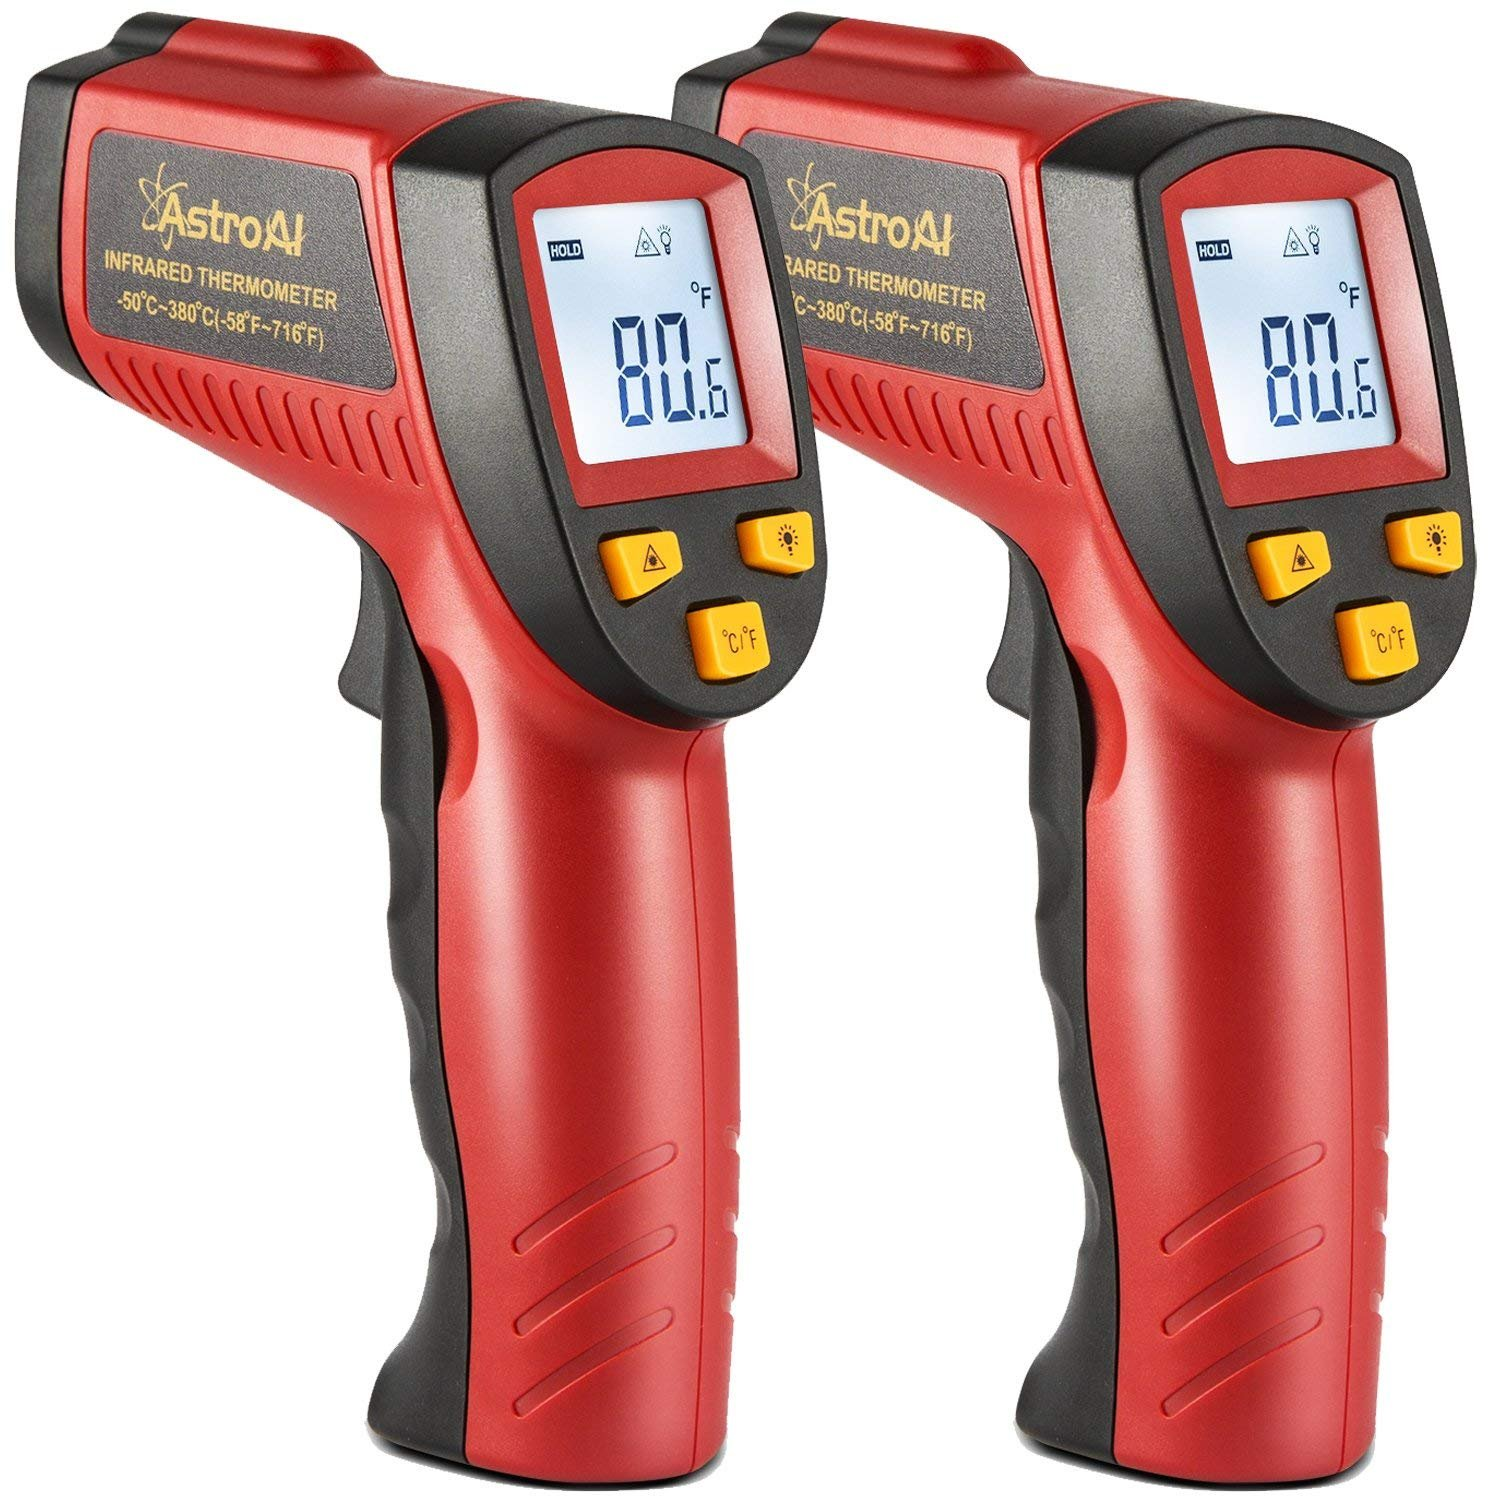 AstroAI 2 Pack Digital Laser Infrared Thermometer, 380 Non-Contact Temperature Gun with Range of -58℉~716℉ (-50℃~380℃), Red